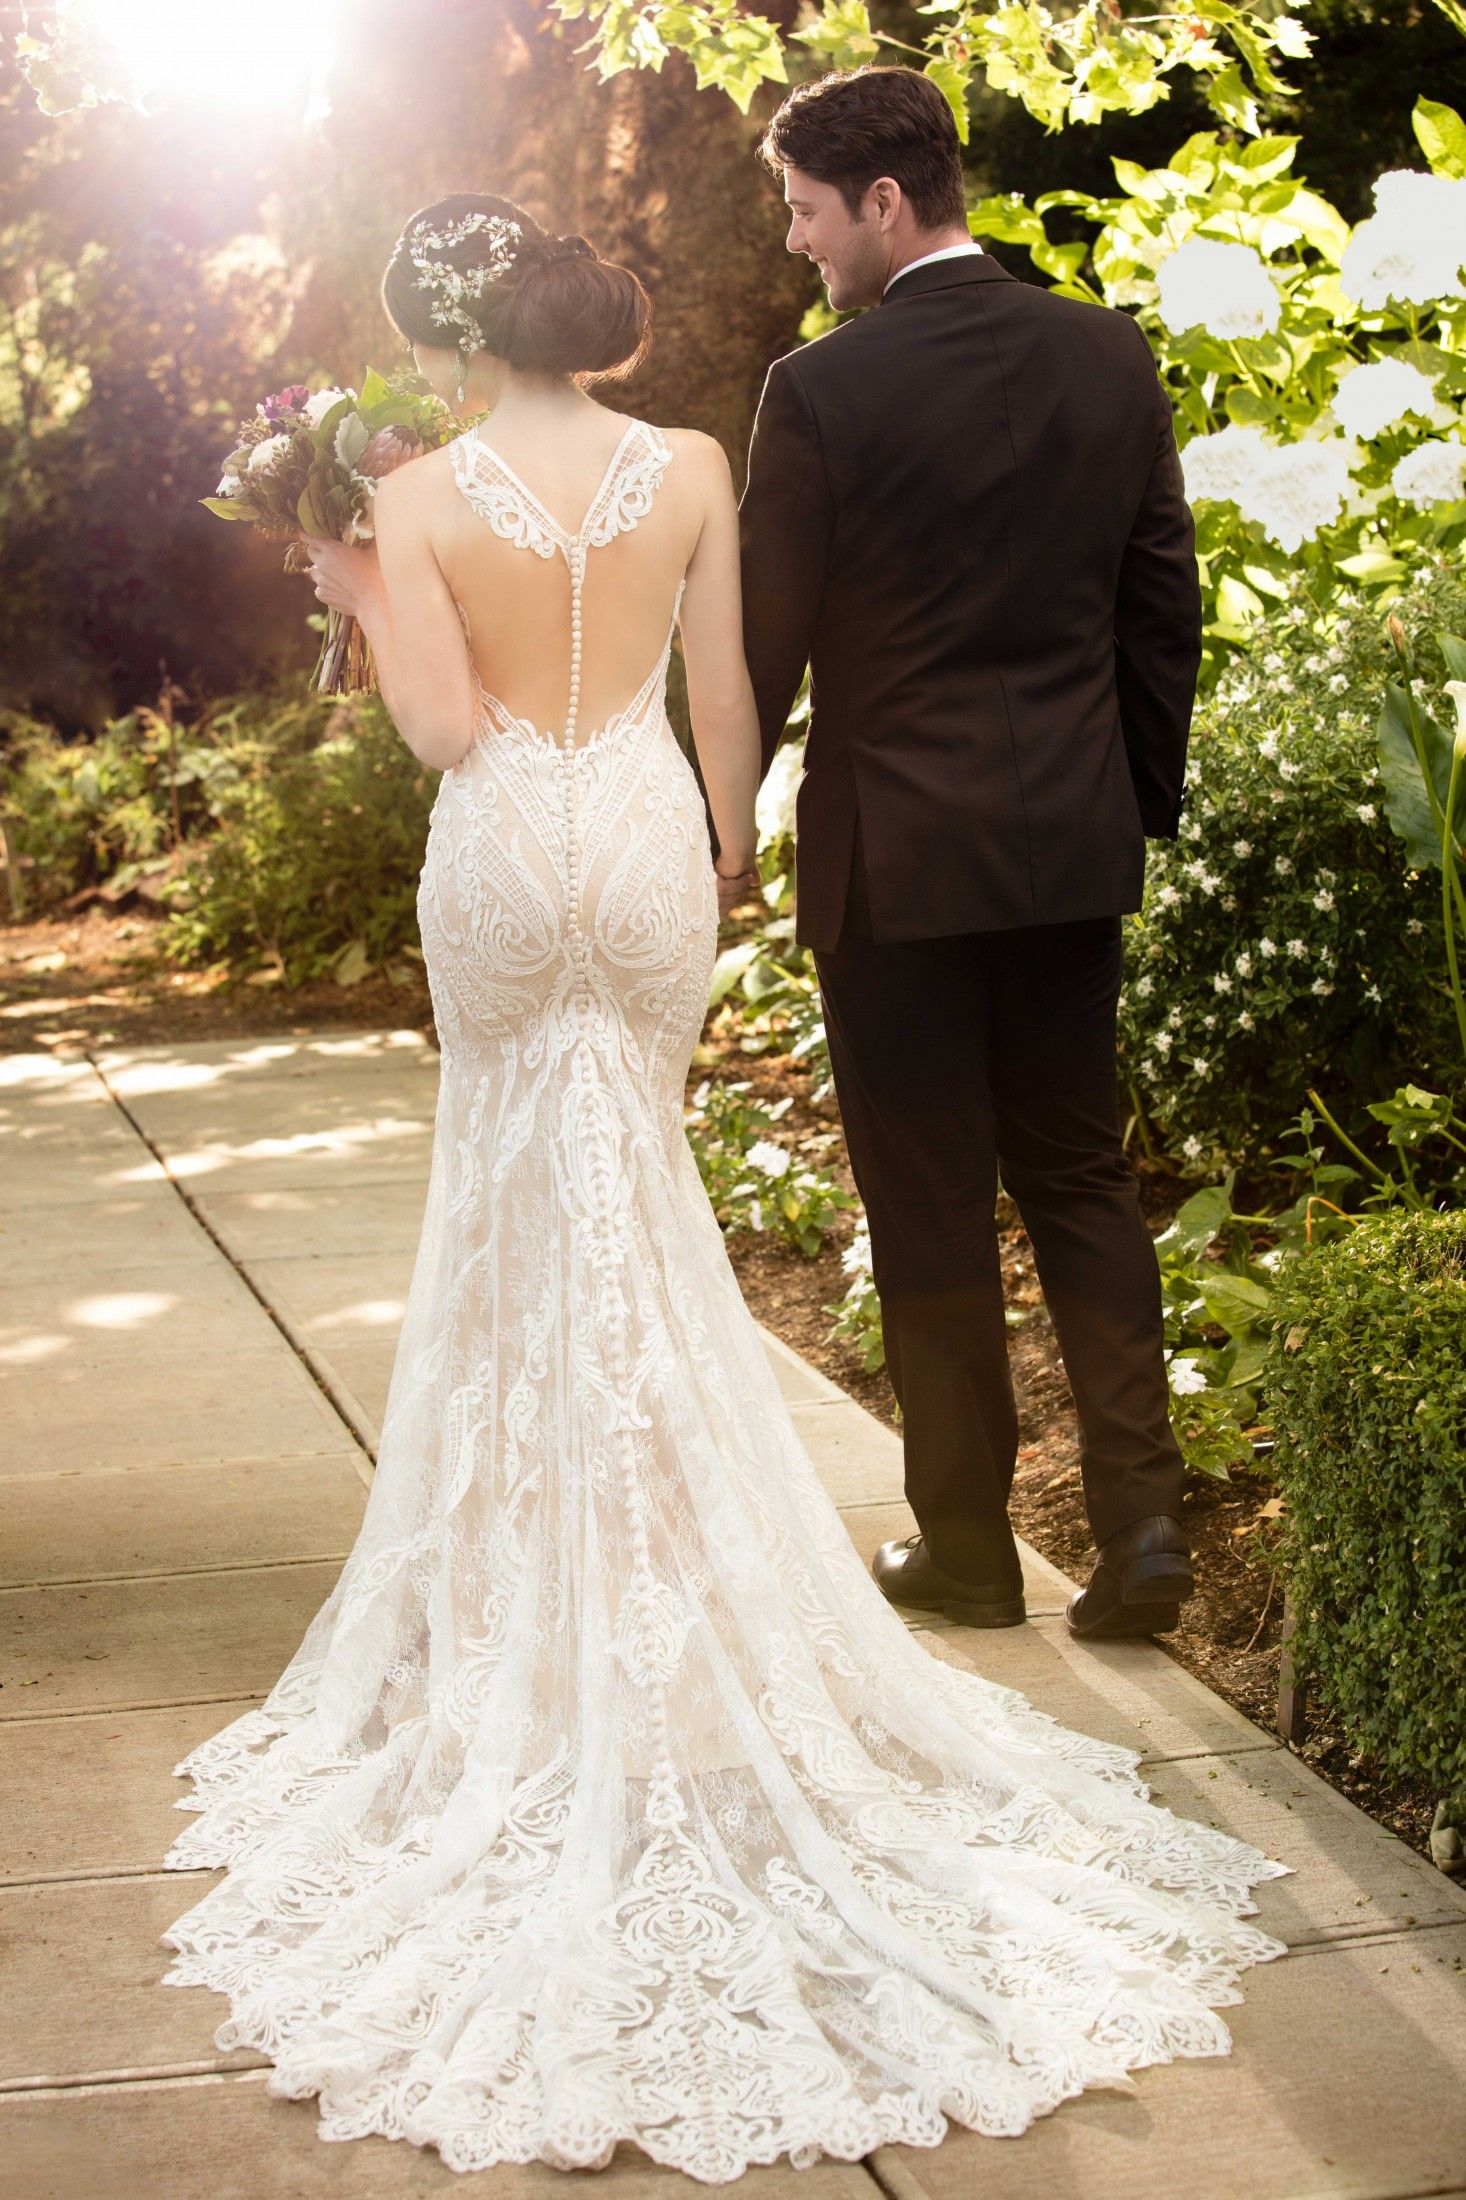 Find Your Dream Wedding Dress | Midway Media